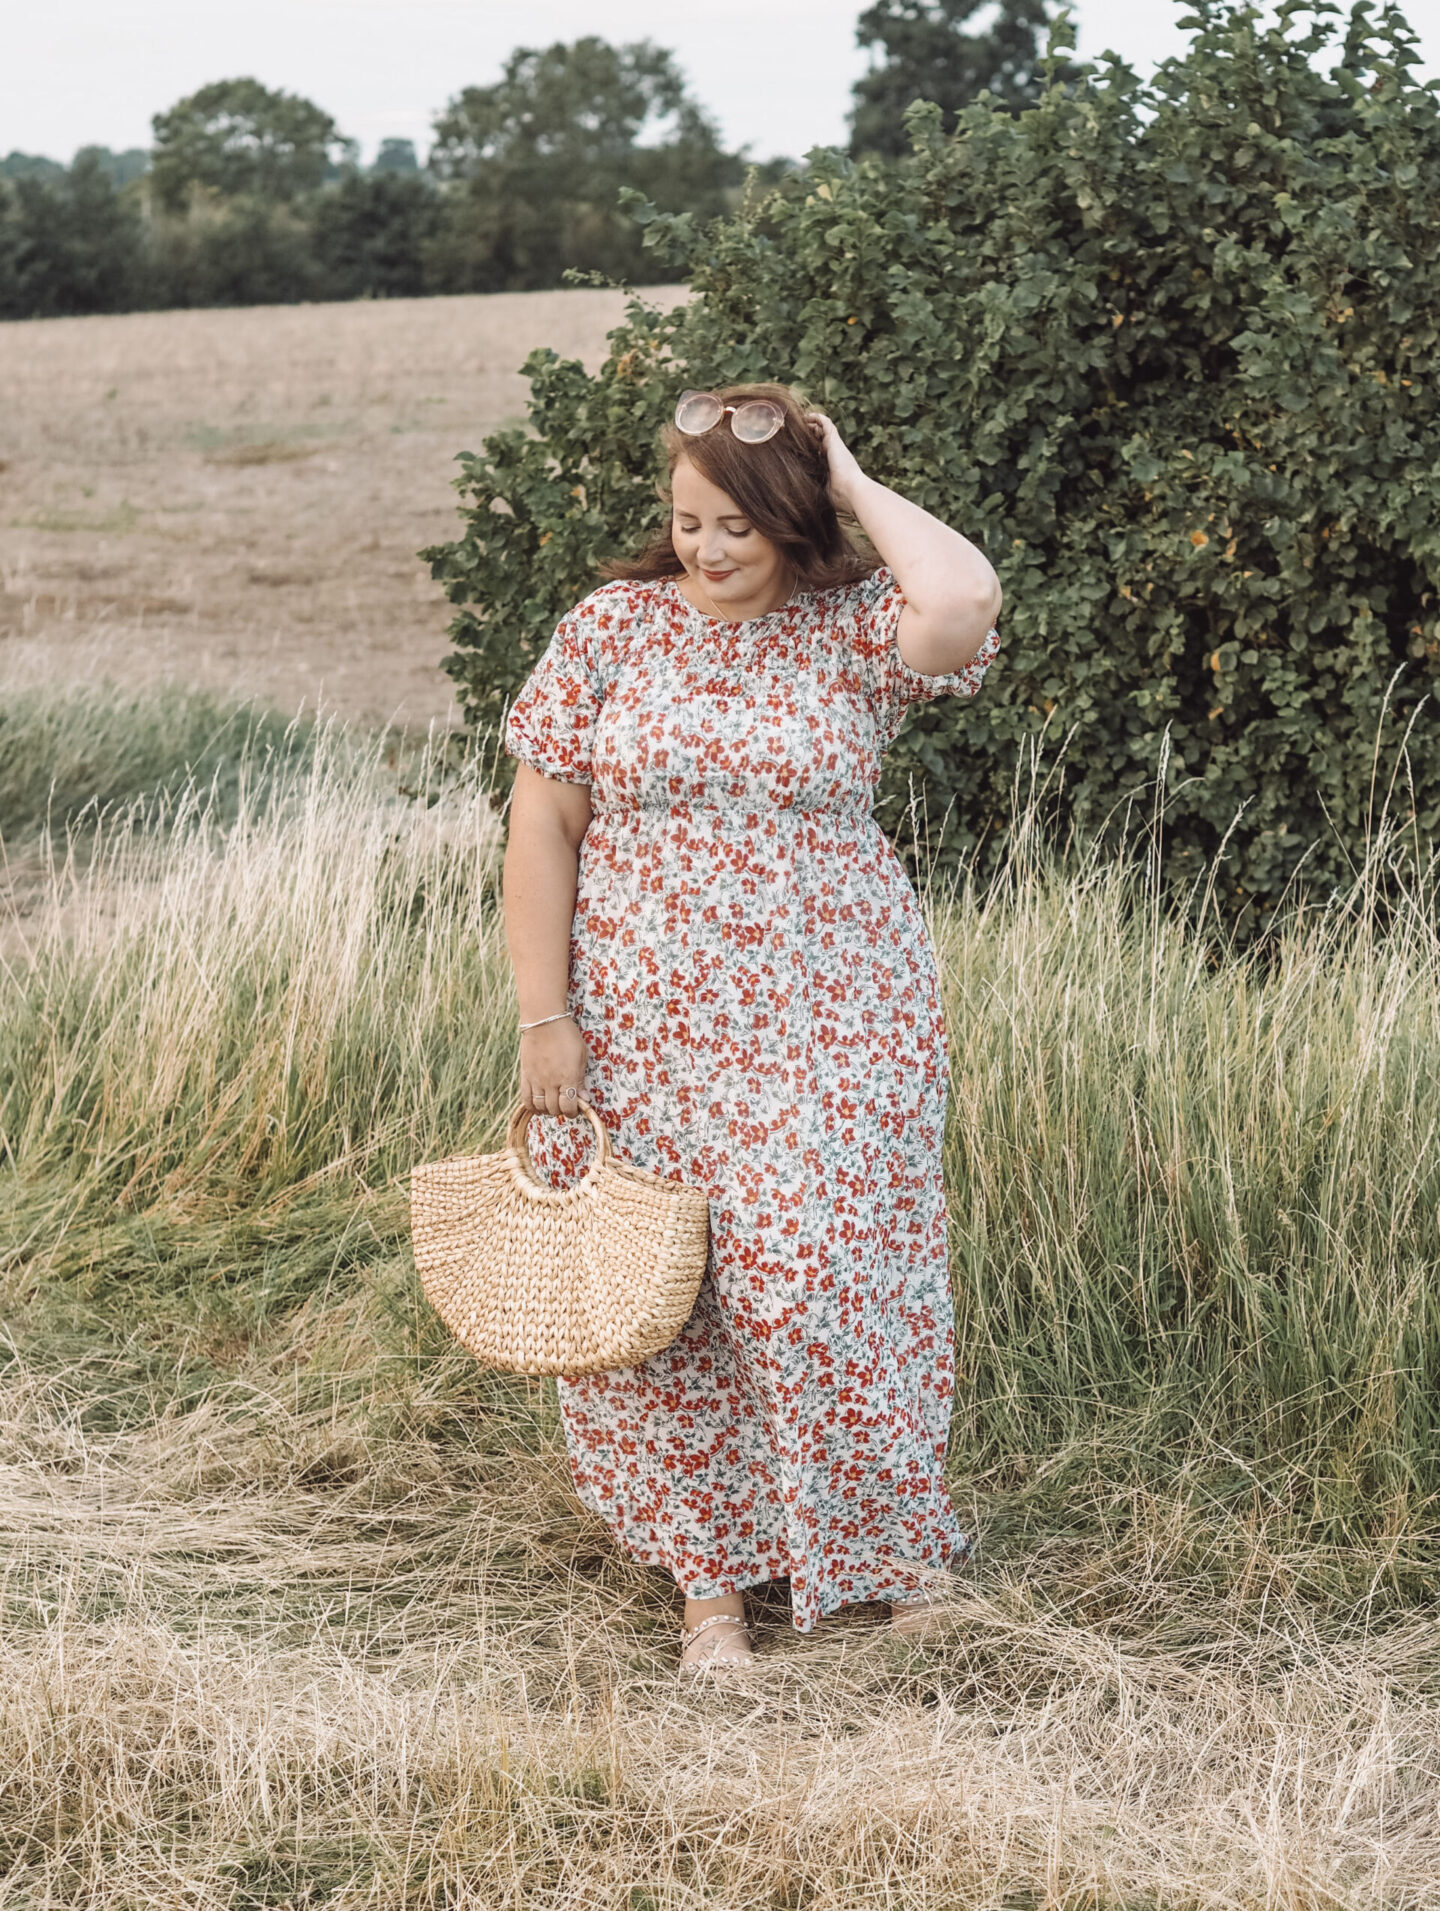 How To Shop Zara If You're Curvy, Plus Size Or Over 30: The Three Things To Look Out For